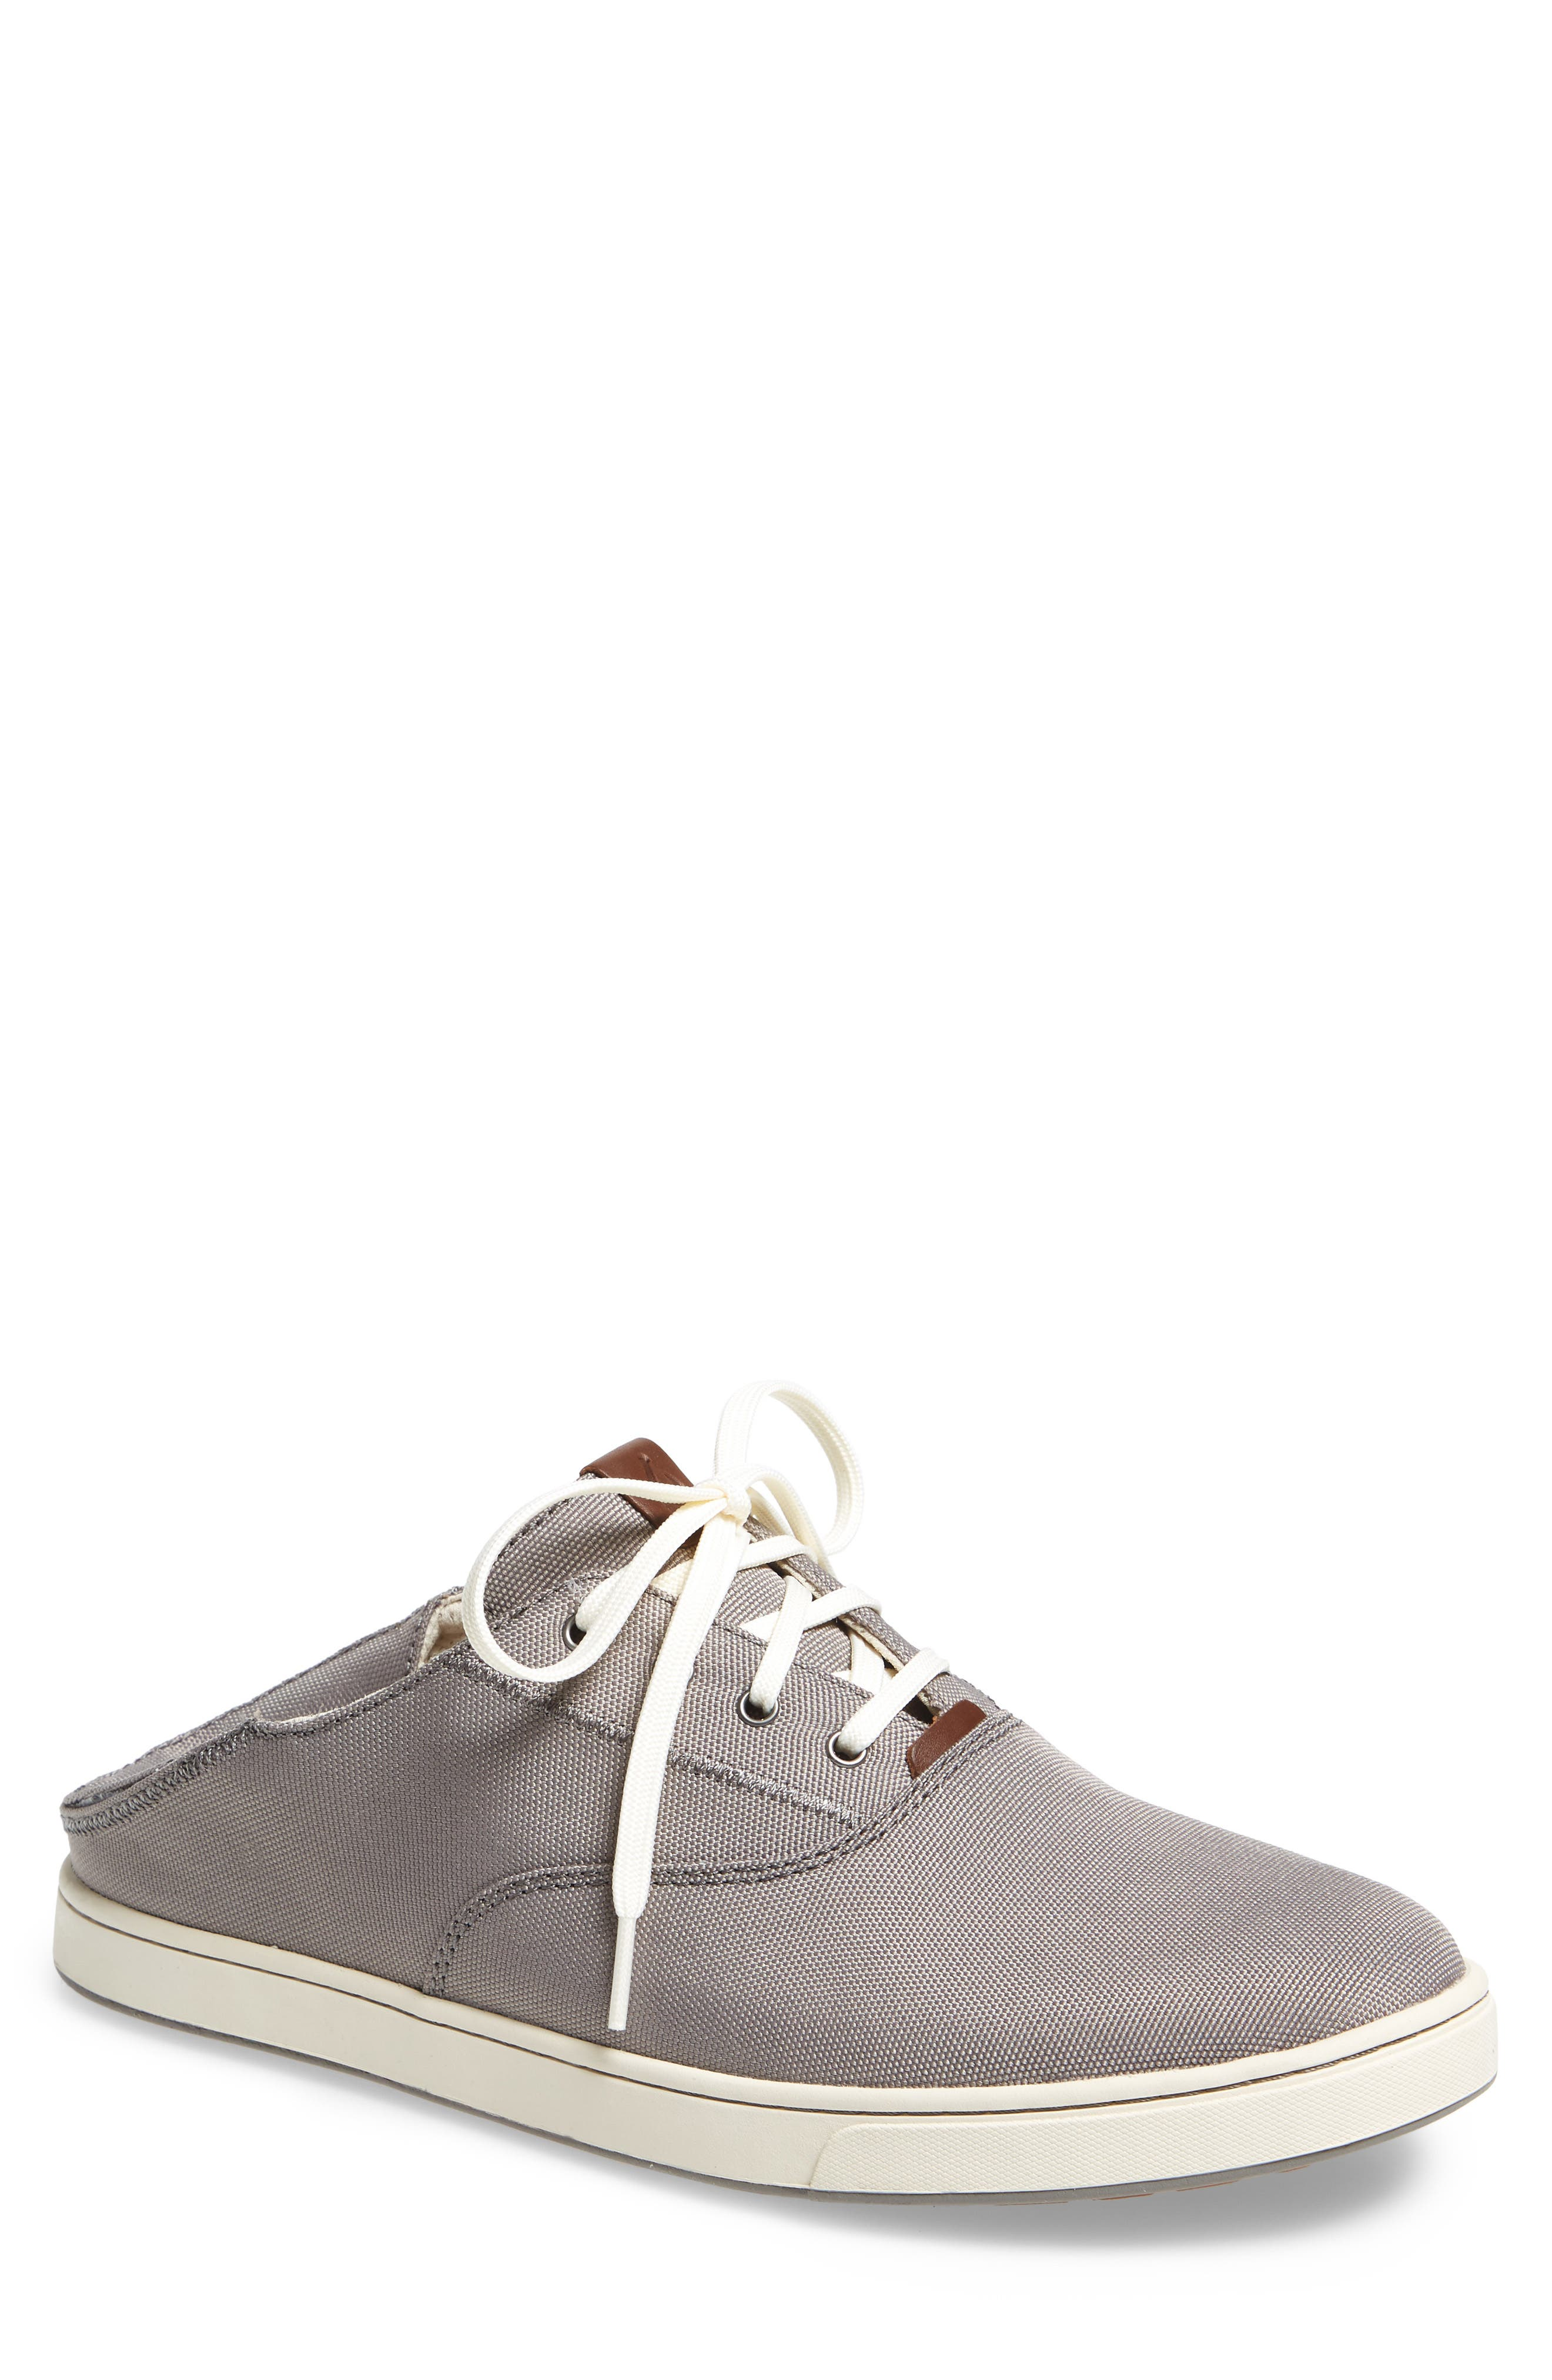 Kahu Collapsible Lace-Up Sneaker,                             Main thumbnail 1, color,                             Fog/ Off White